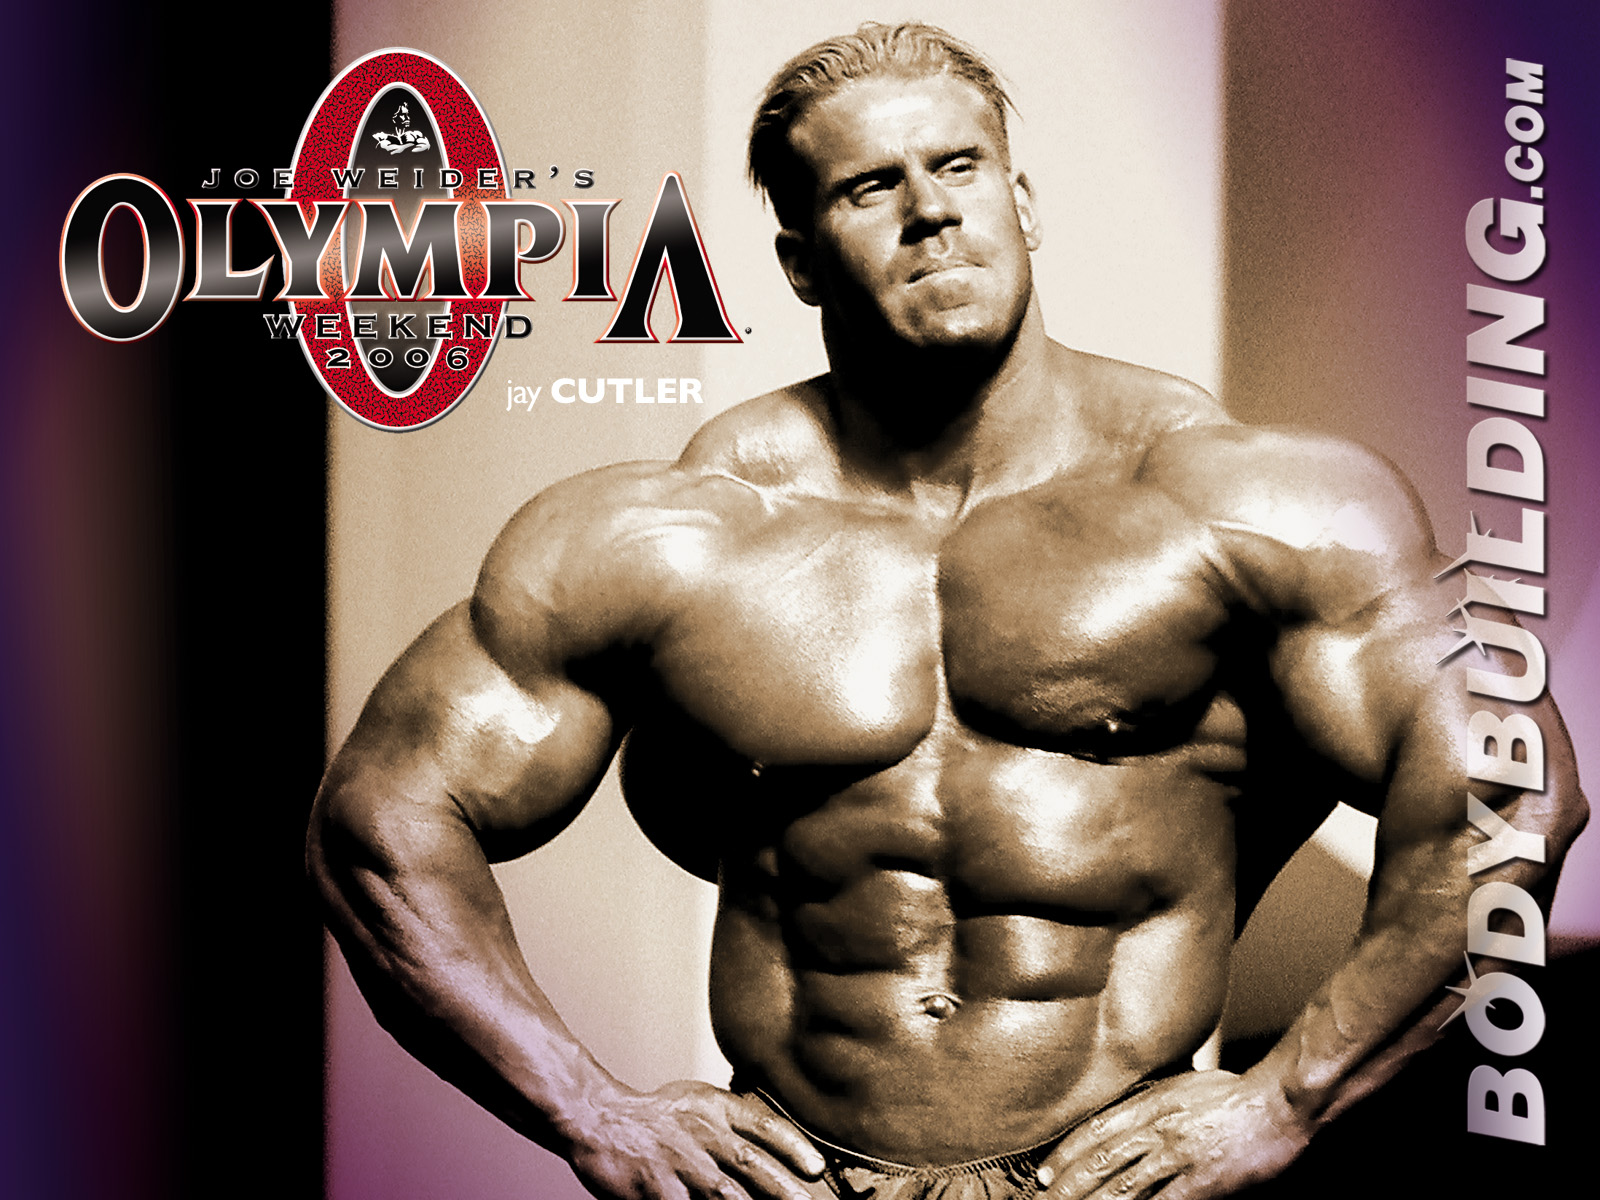 Download High quality Jay Cutler Olympia Body 1600x1200